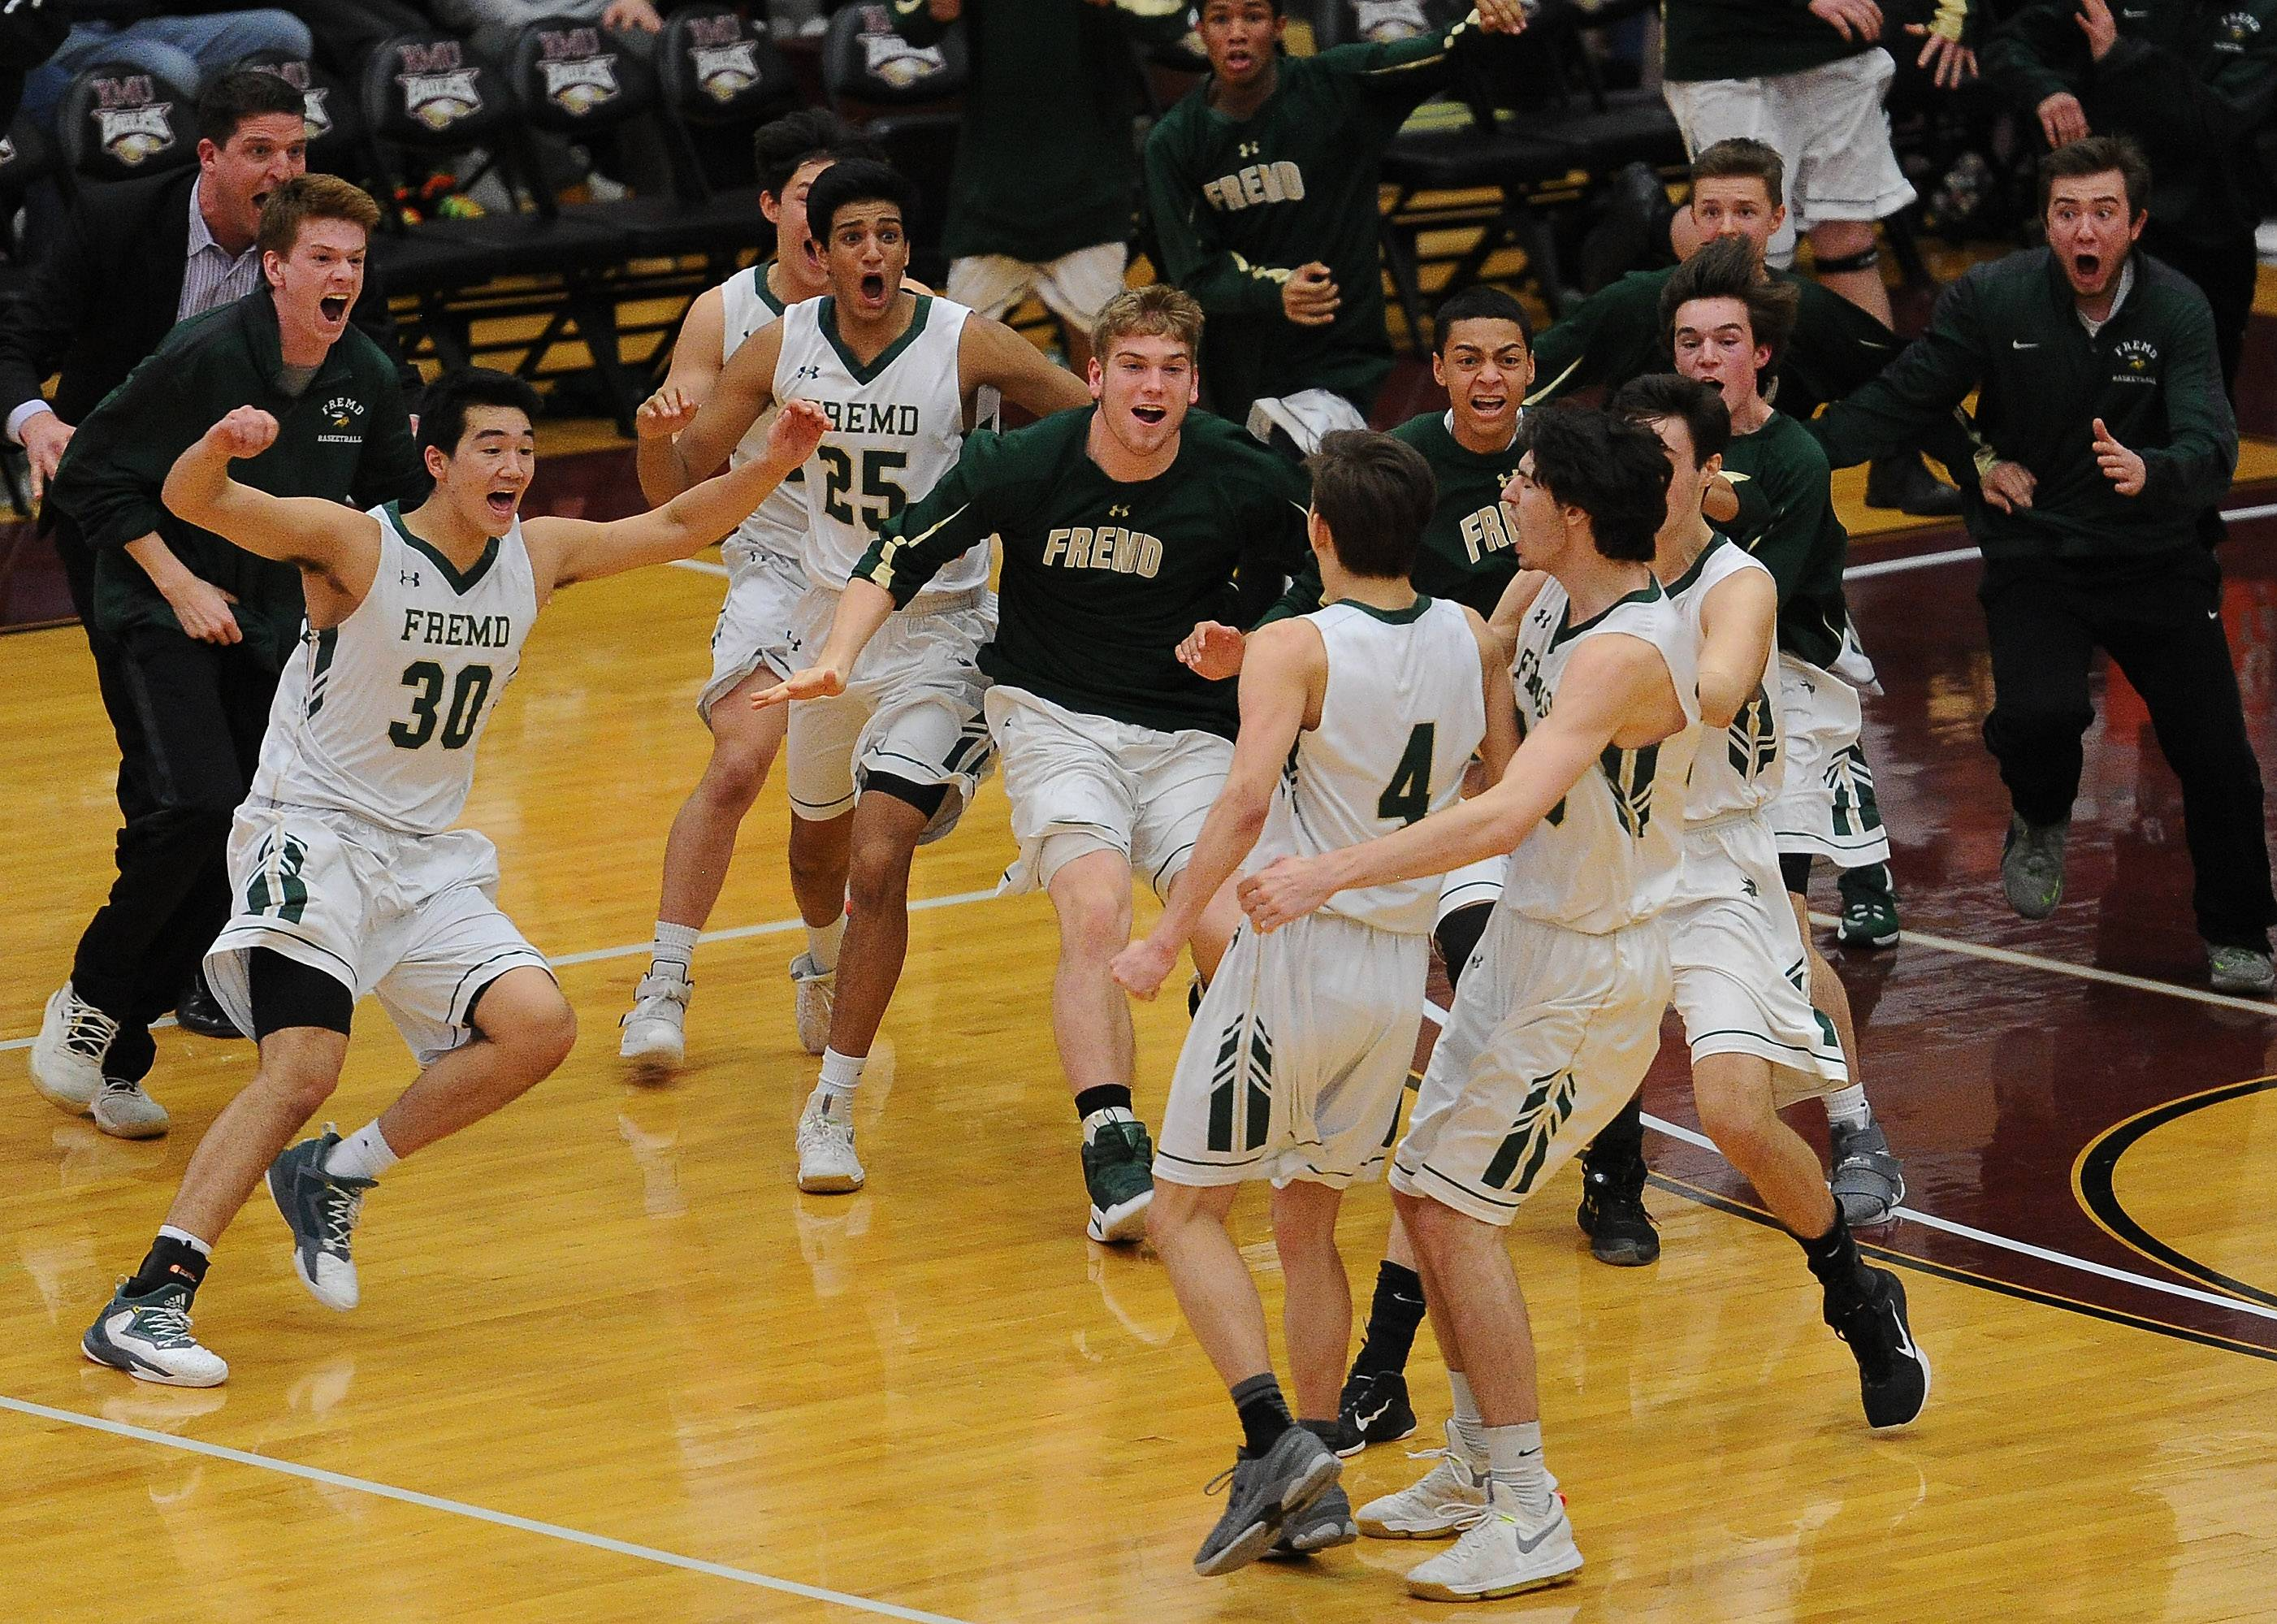 Kyle Sliwa's teammates rush the floor after his 3-pointer were the decisive points in Fremd's 43-42 victory Conant in Class 4A sectional final play Friday at Robert Morris University.